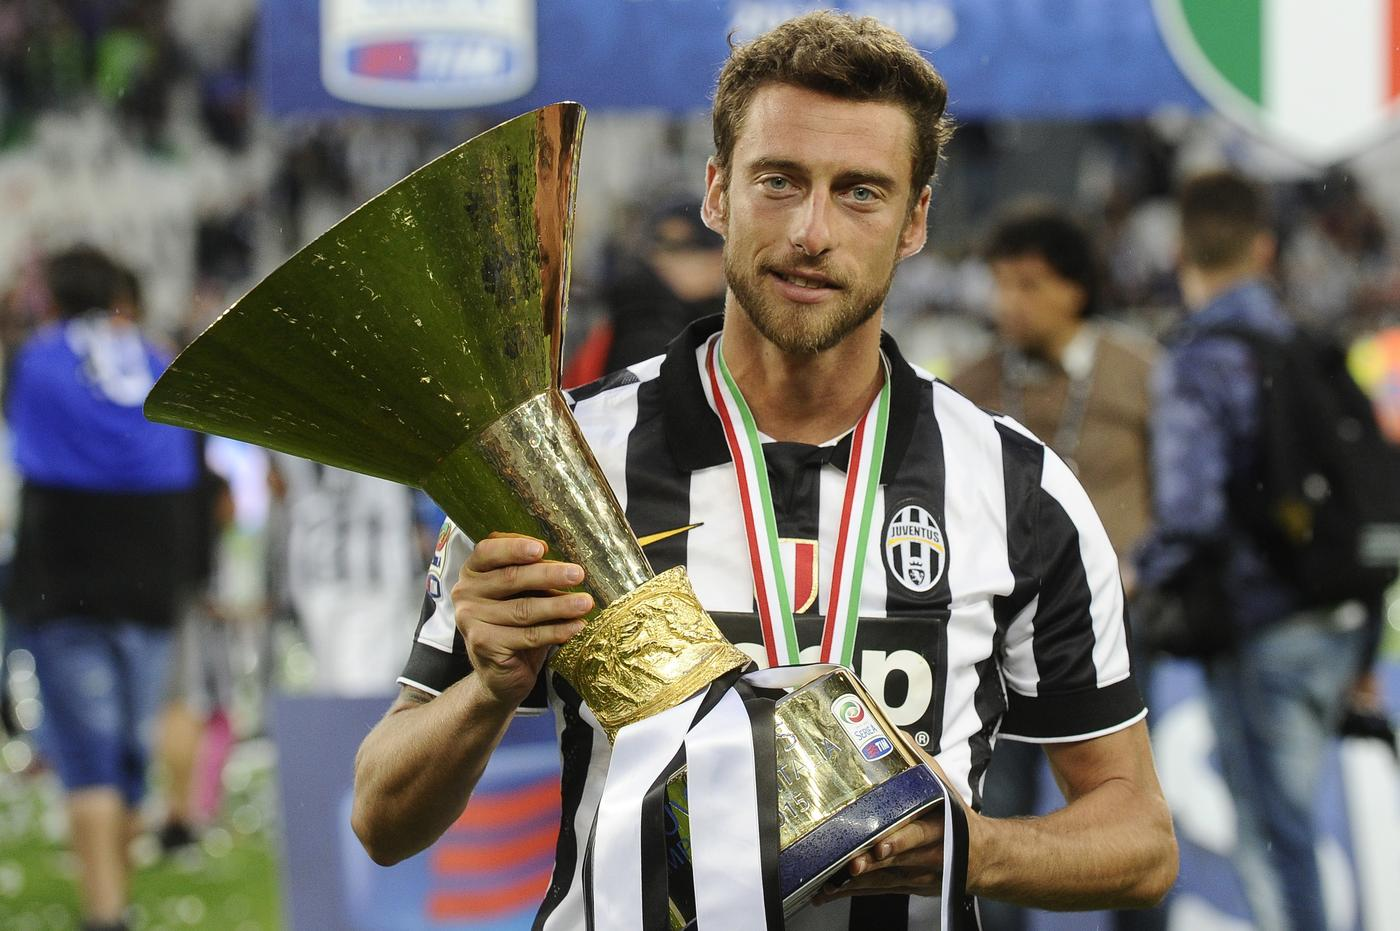 Liverpool made transfer offer for Claudio Marchisio, says Juventus chief